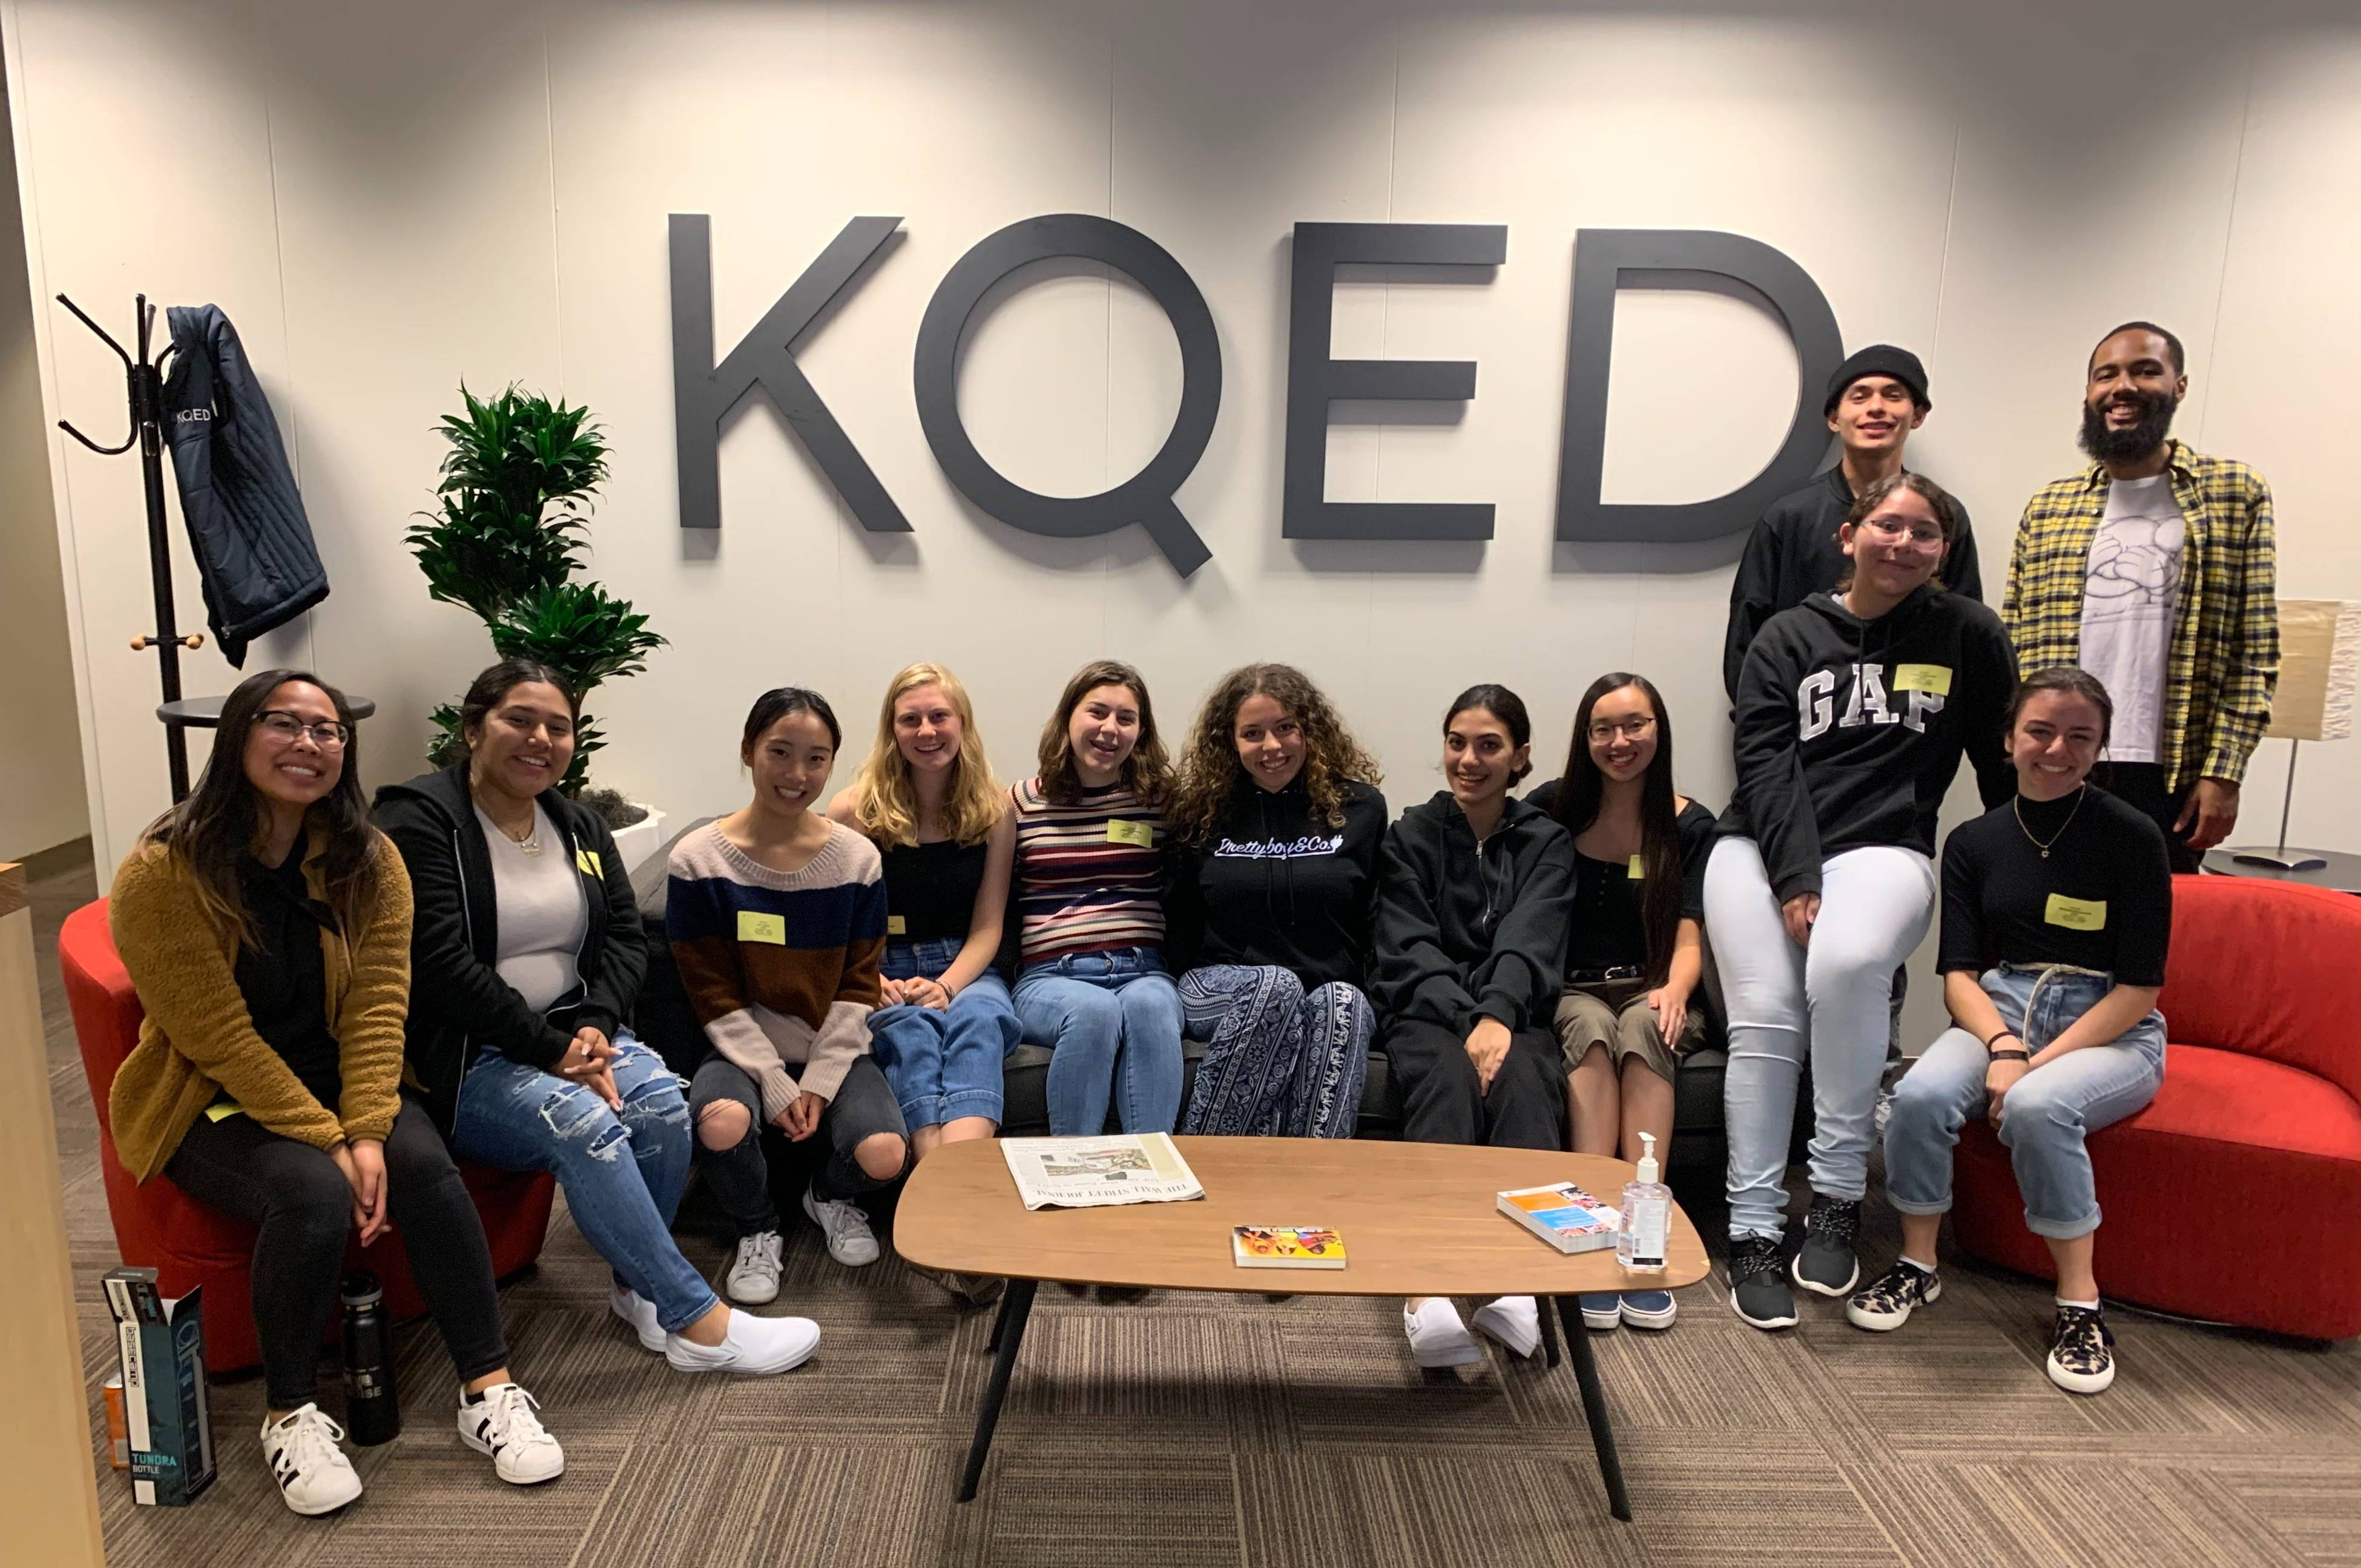 A group of about 10 teens sit on a couch in front the KQED logo in large letters. Myles Bess, host of Above the Noise, stands next to them.